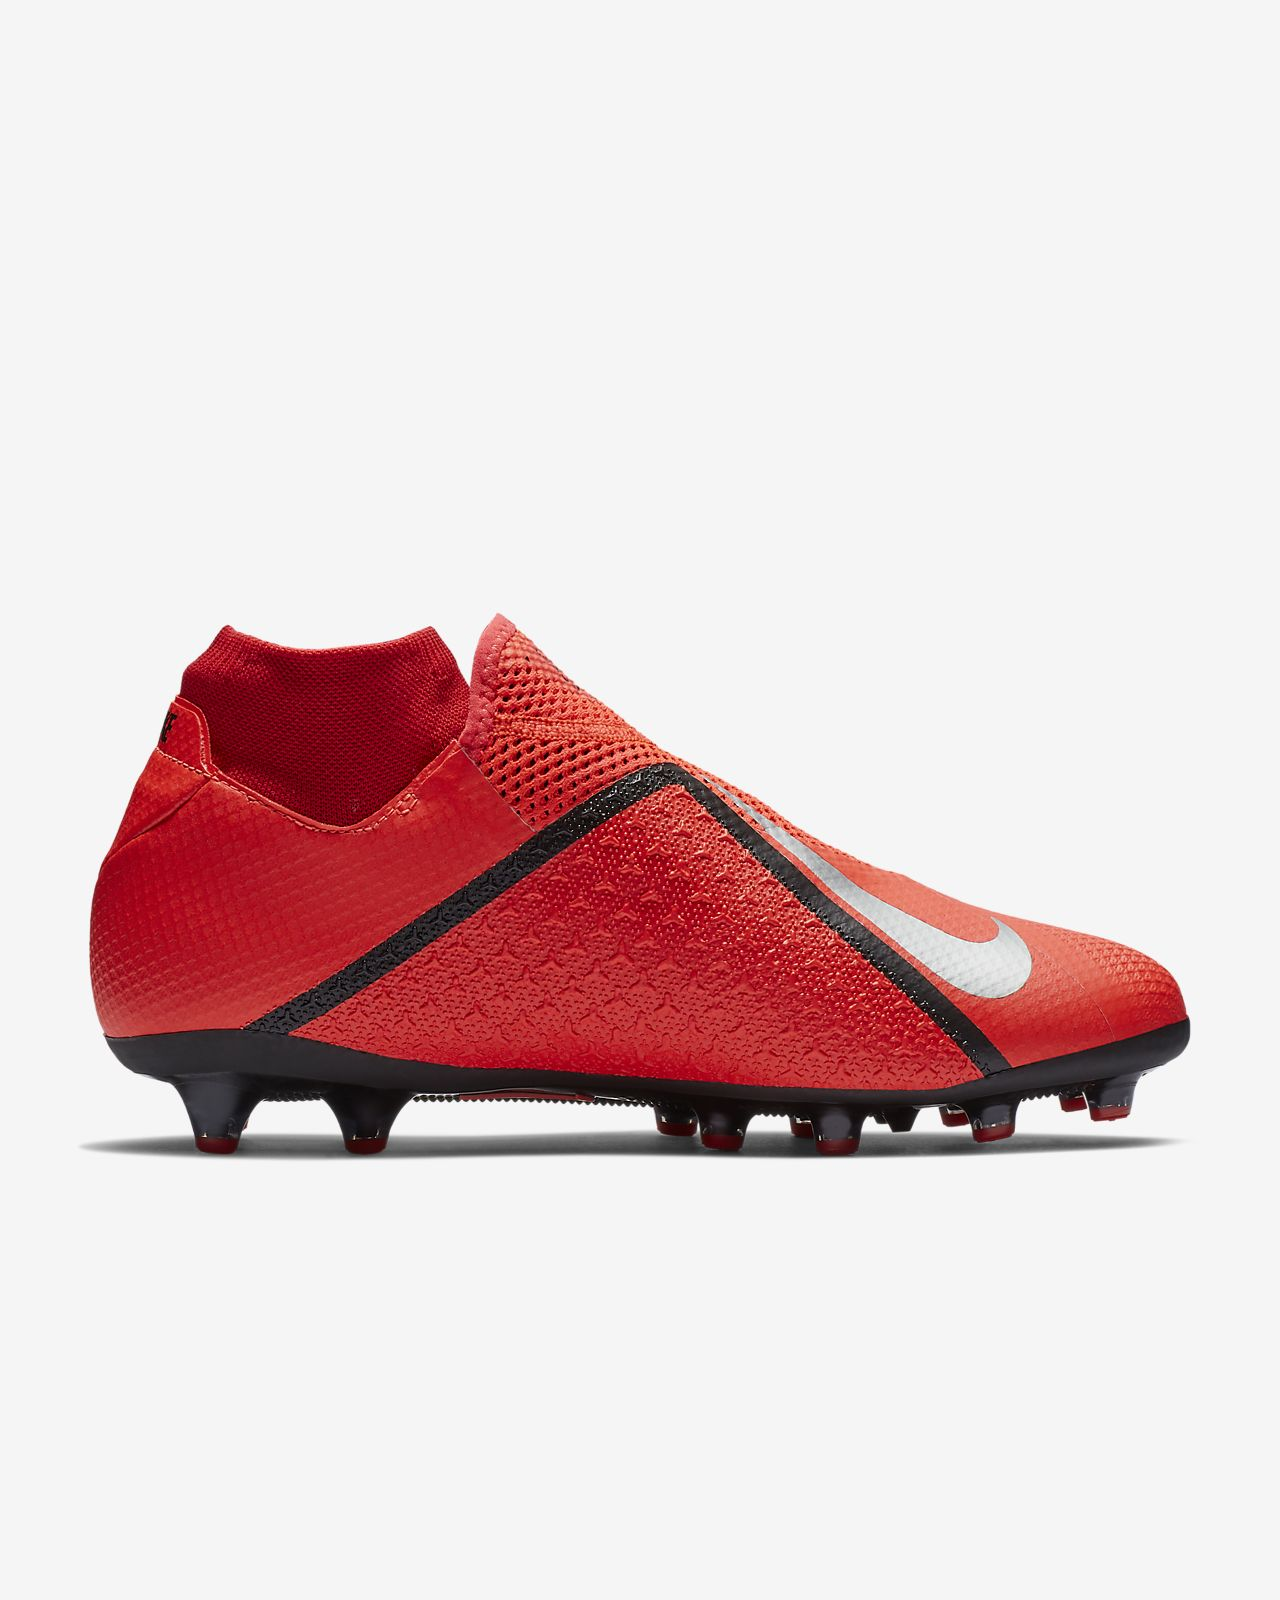 455fa0686 ... Nike Phantom Vision Pro Dynamic Fit AG-PRO Artificial-Grass Football  Boot